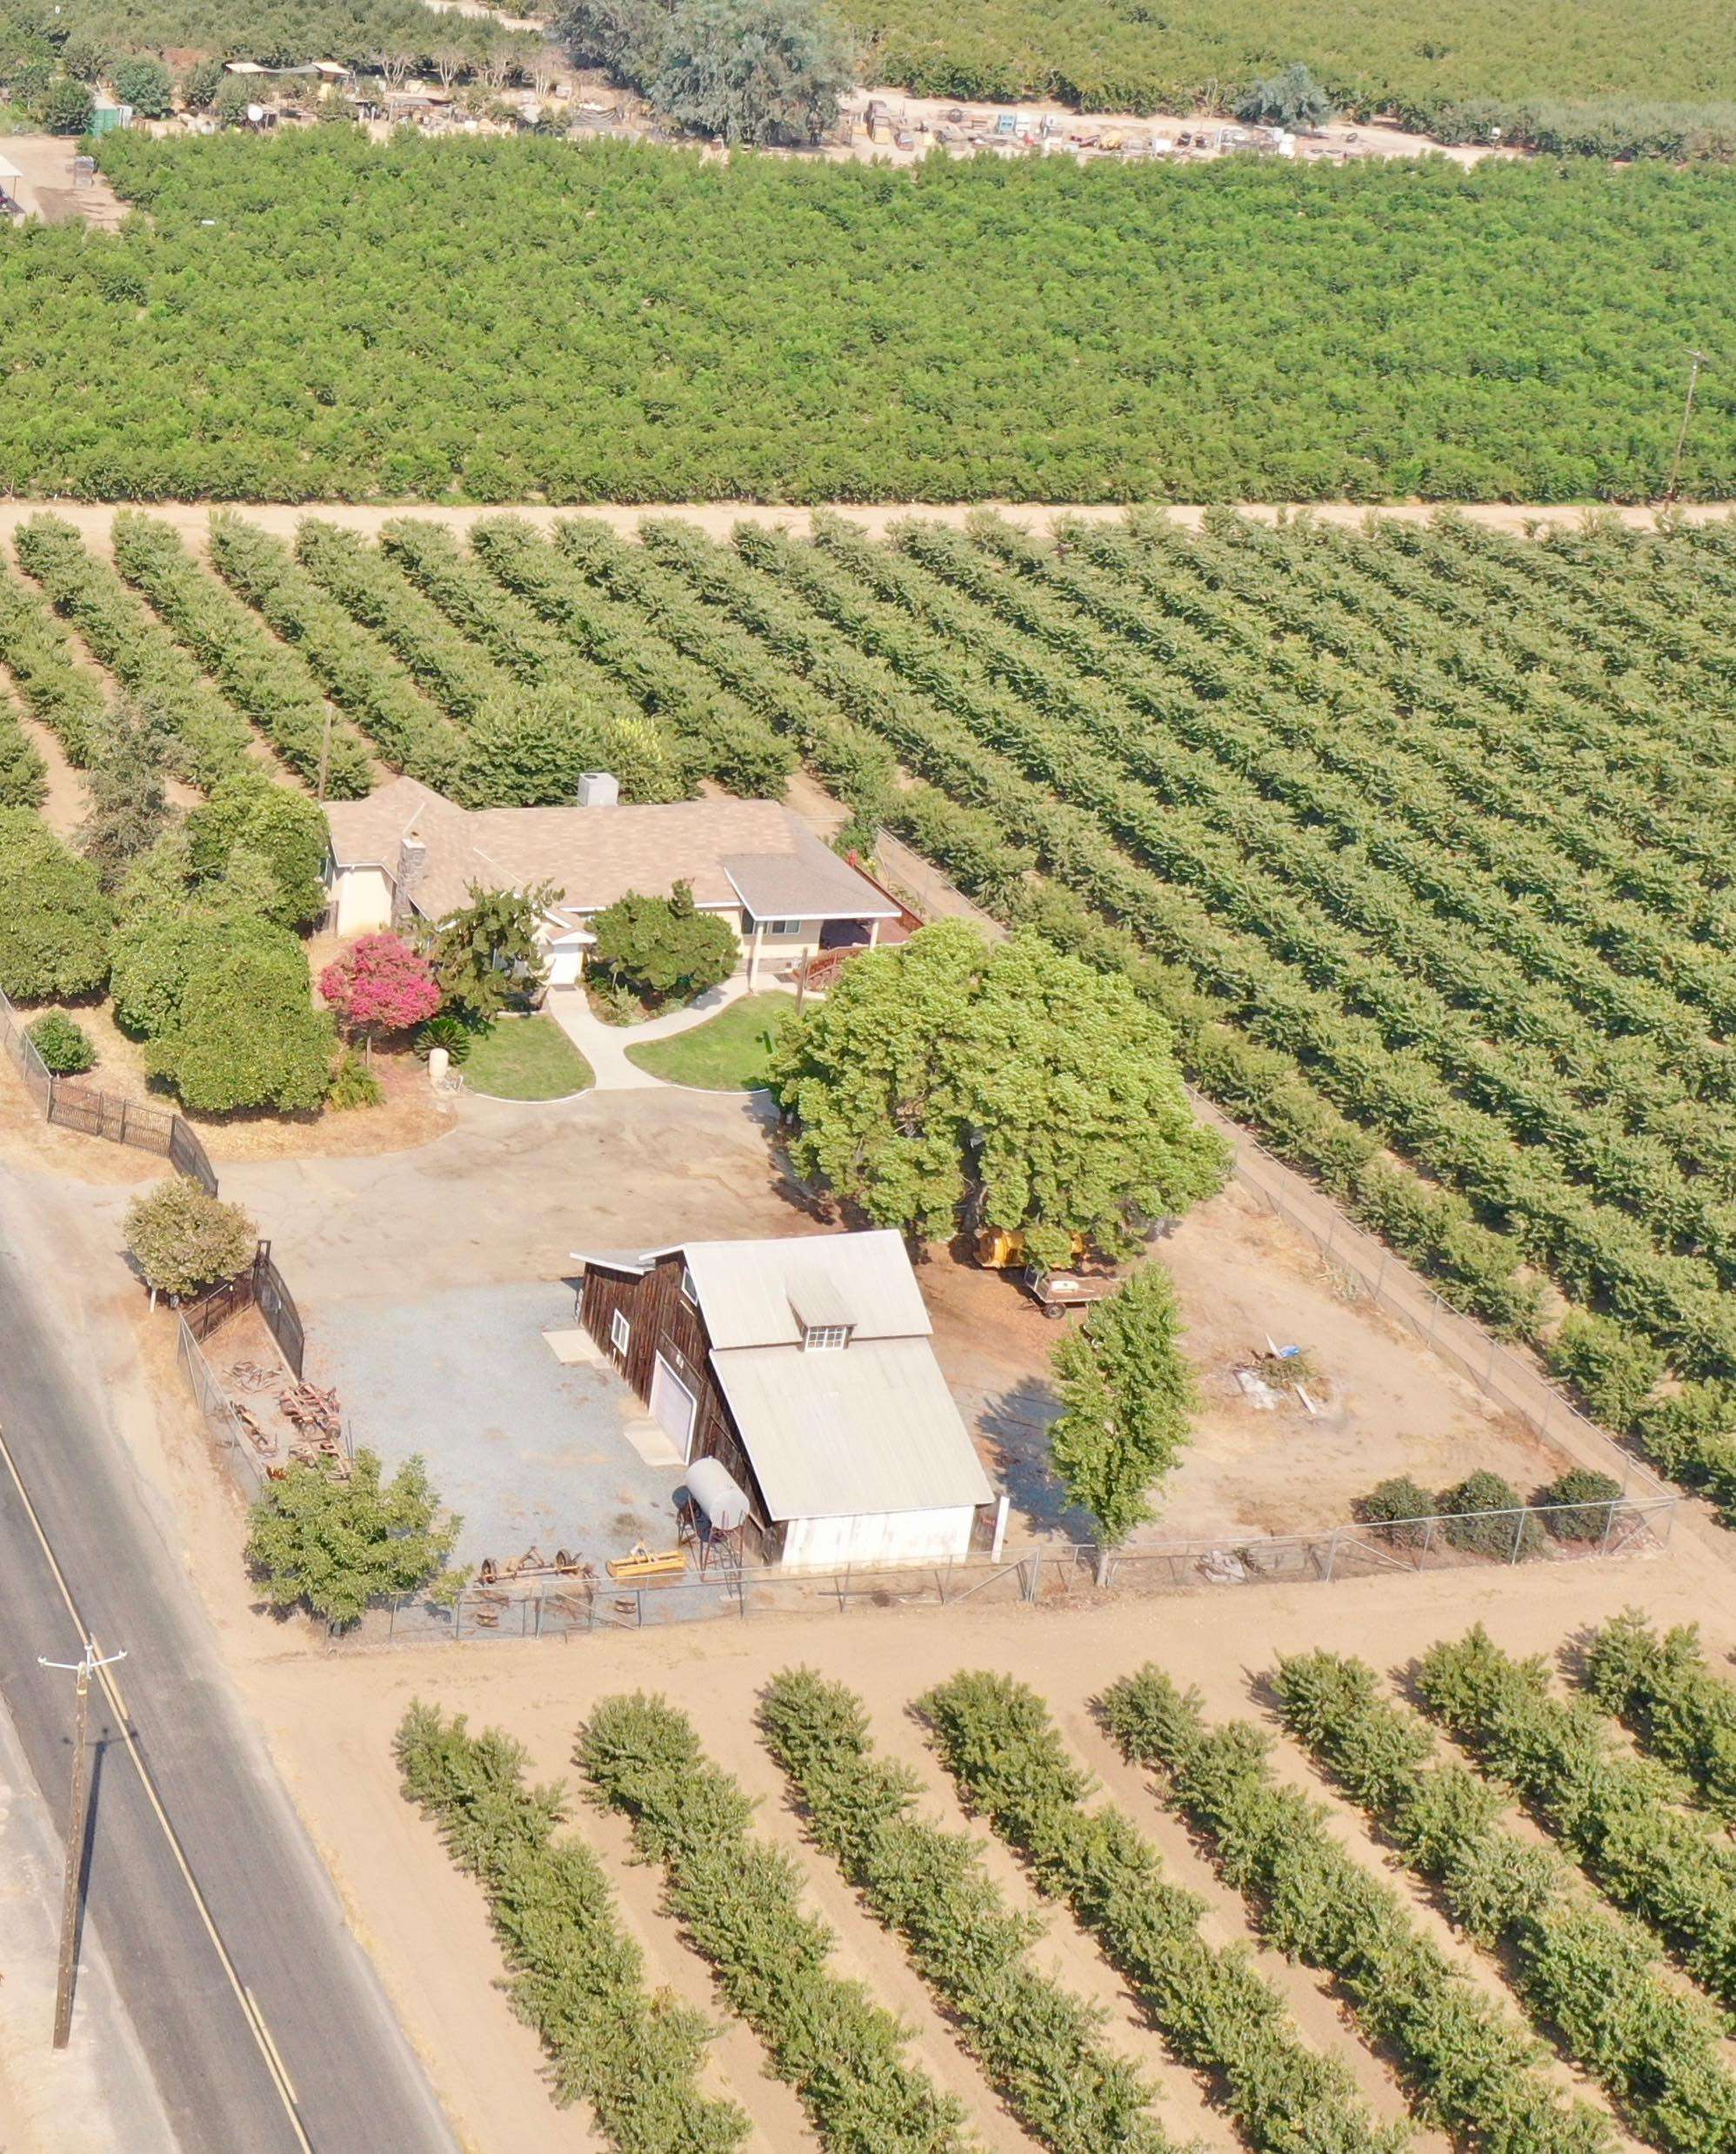 20 Acres Peaches & Vines with a Home – Kingsburg, CA